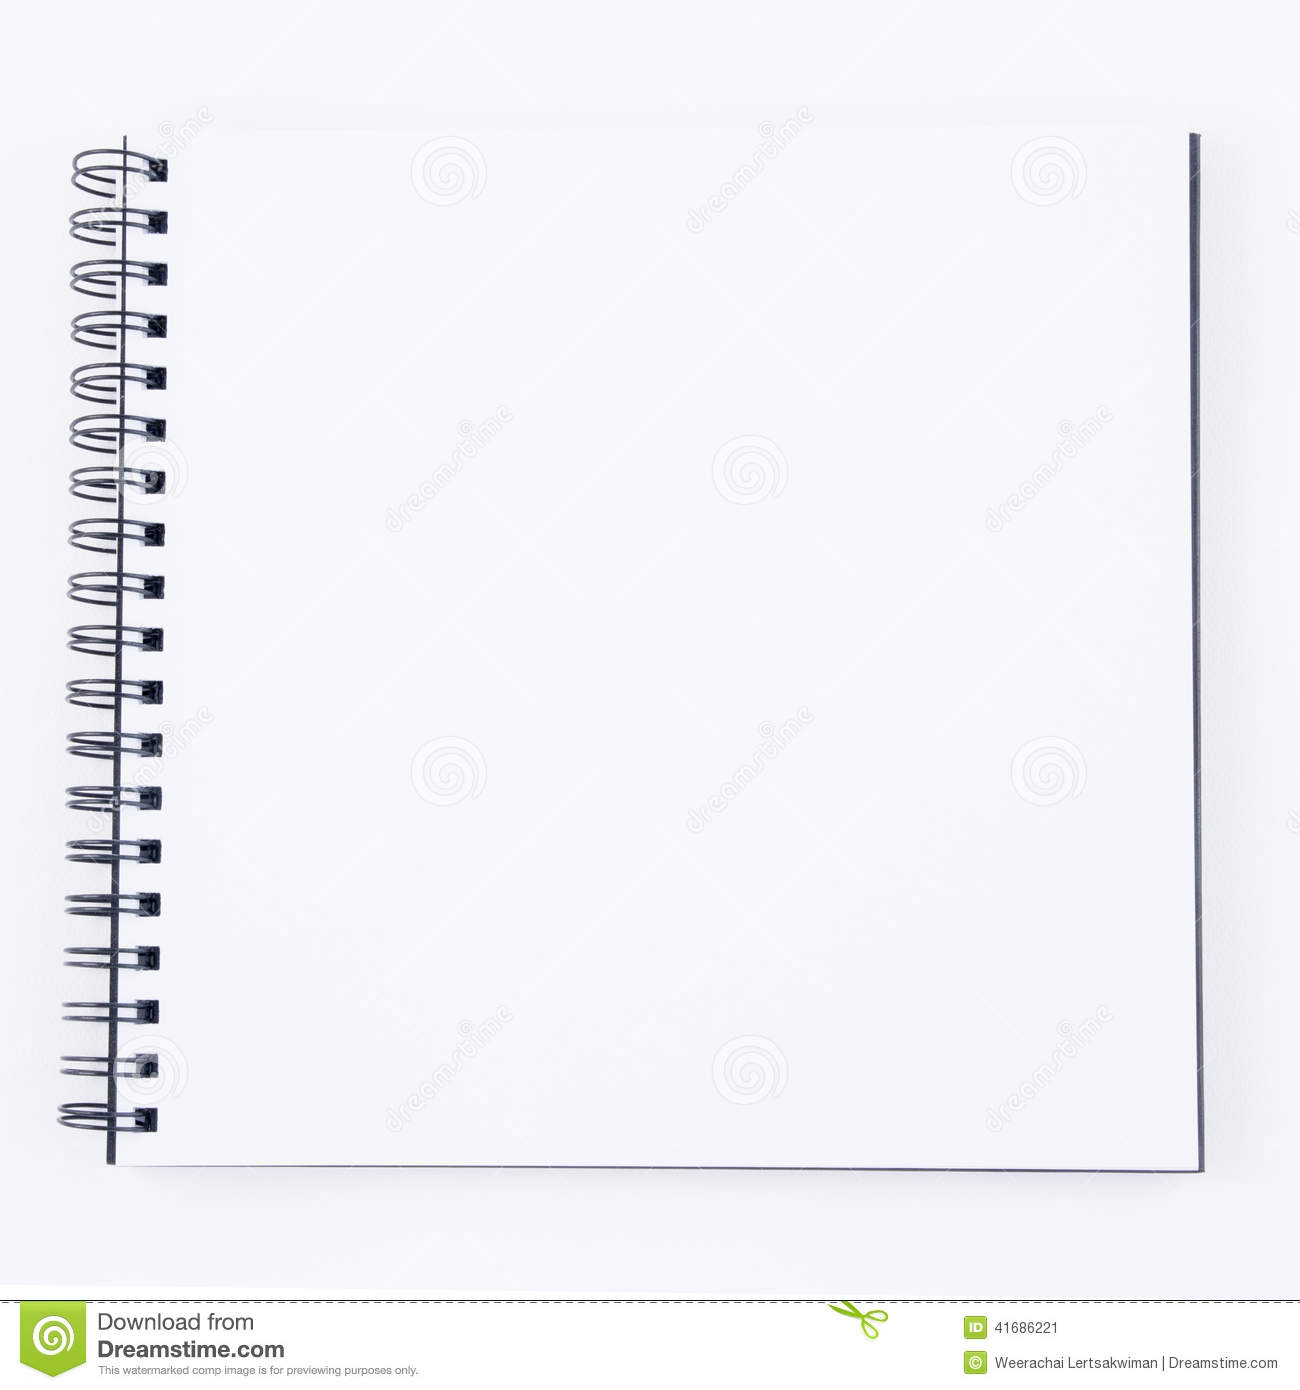 Sketchbook Stock Photo - Image: 41686221